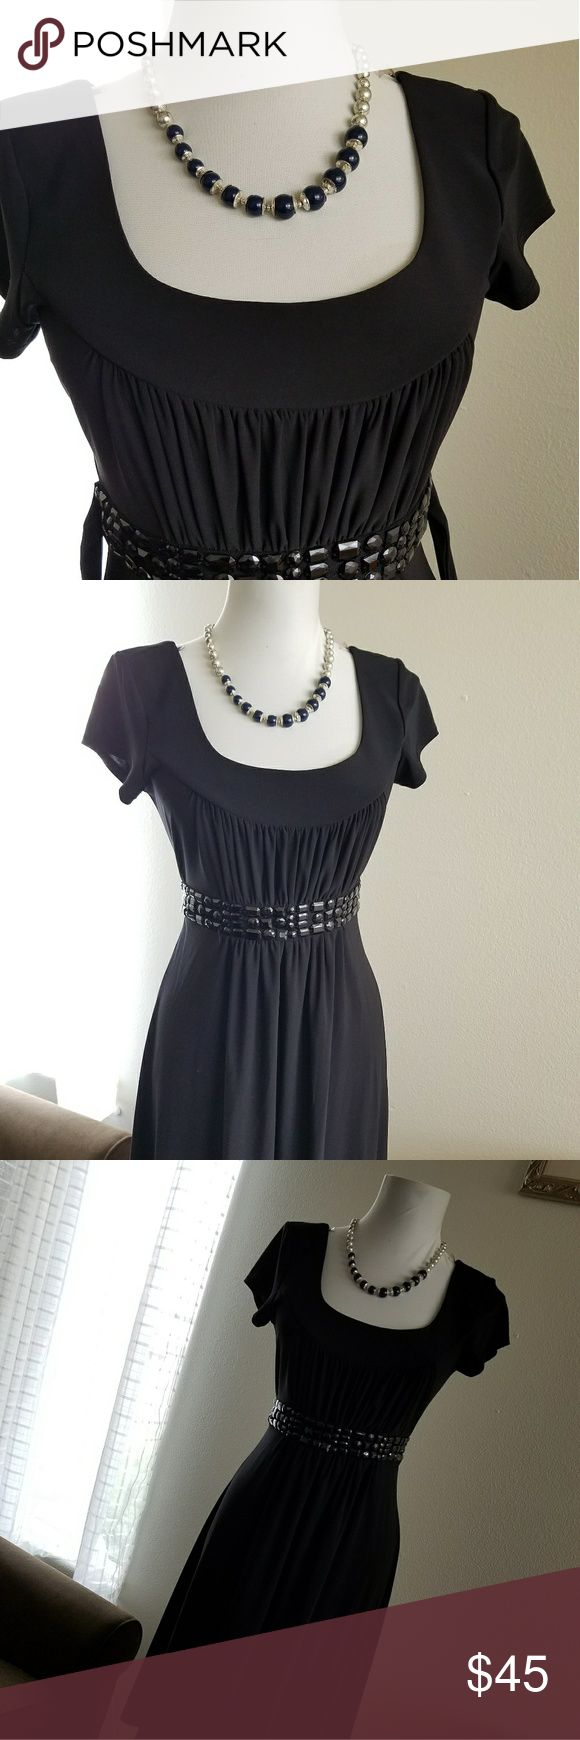 B smart women black dress Uesd one time good condition size 5/6  95% polyester & Other Stories Dresses Wedding